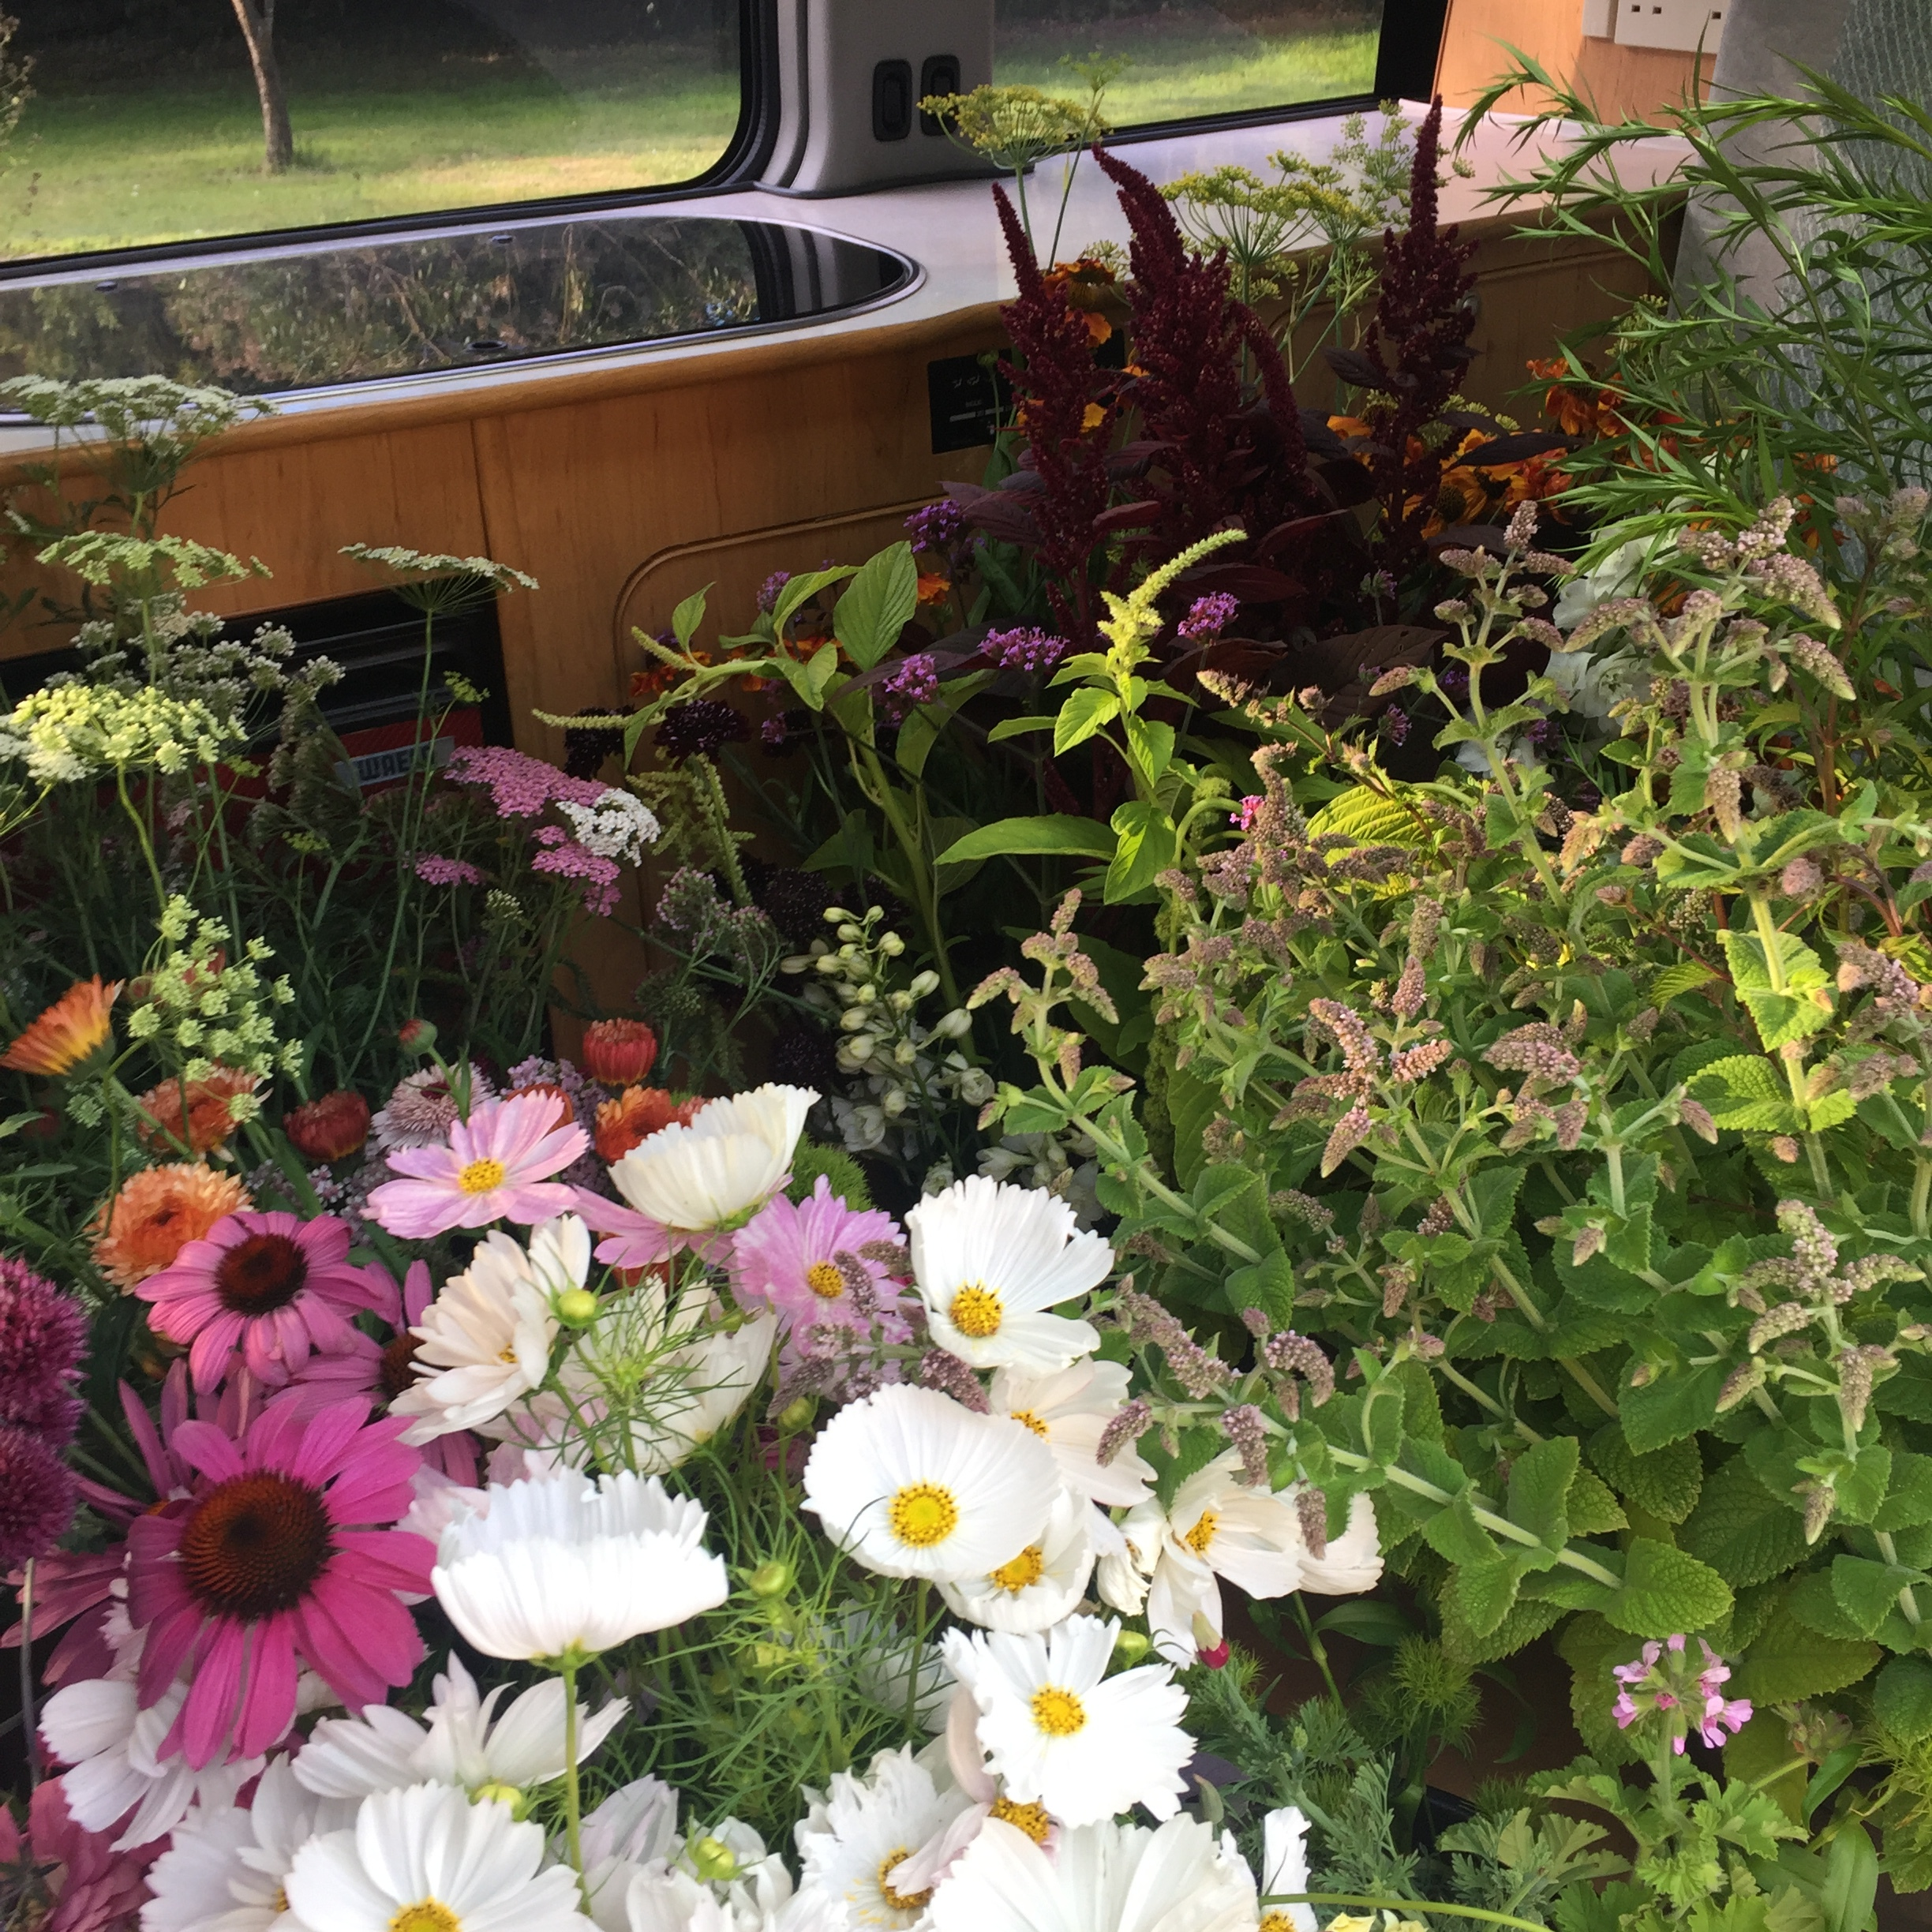 Our camper van filled to be the brim with buckets of flowers ready to be delivered.